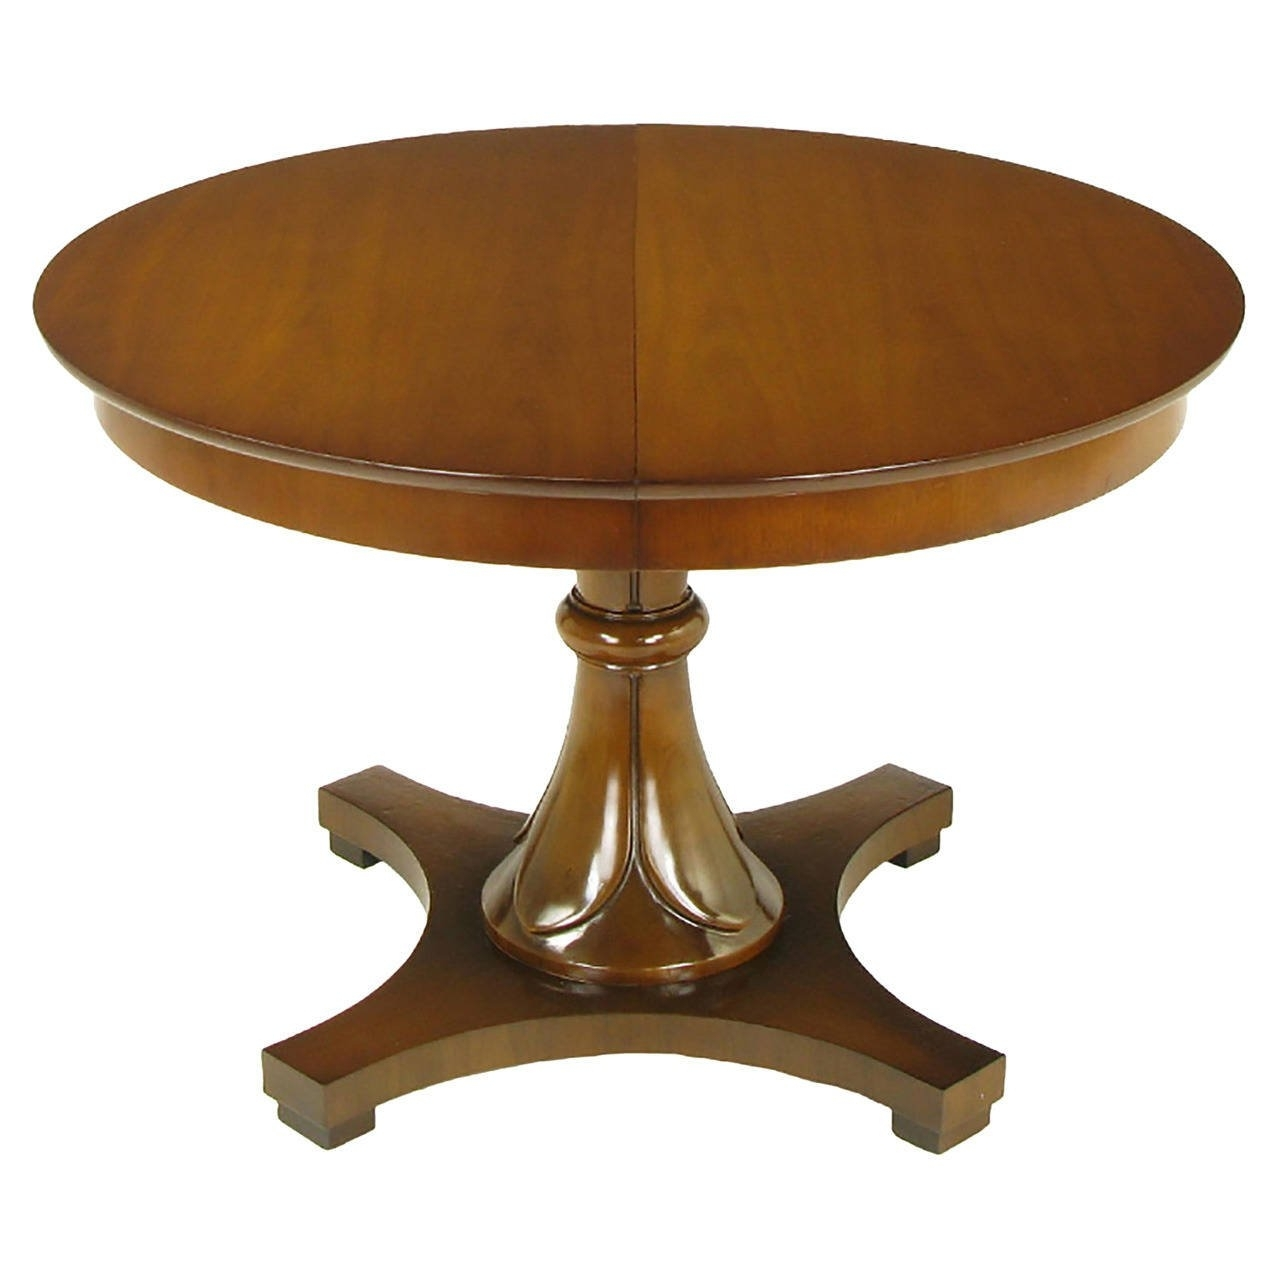 Stone Pedestal Table Base For Sale At 1Stdibs inside Jackson Marble Side Tables (Image 28 of 30)